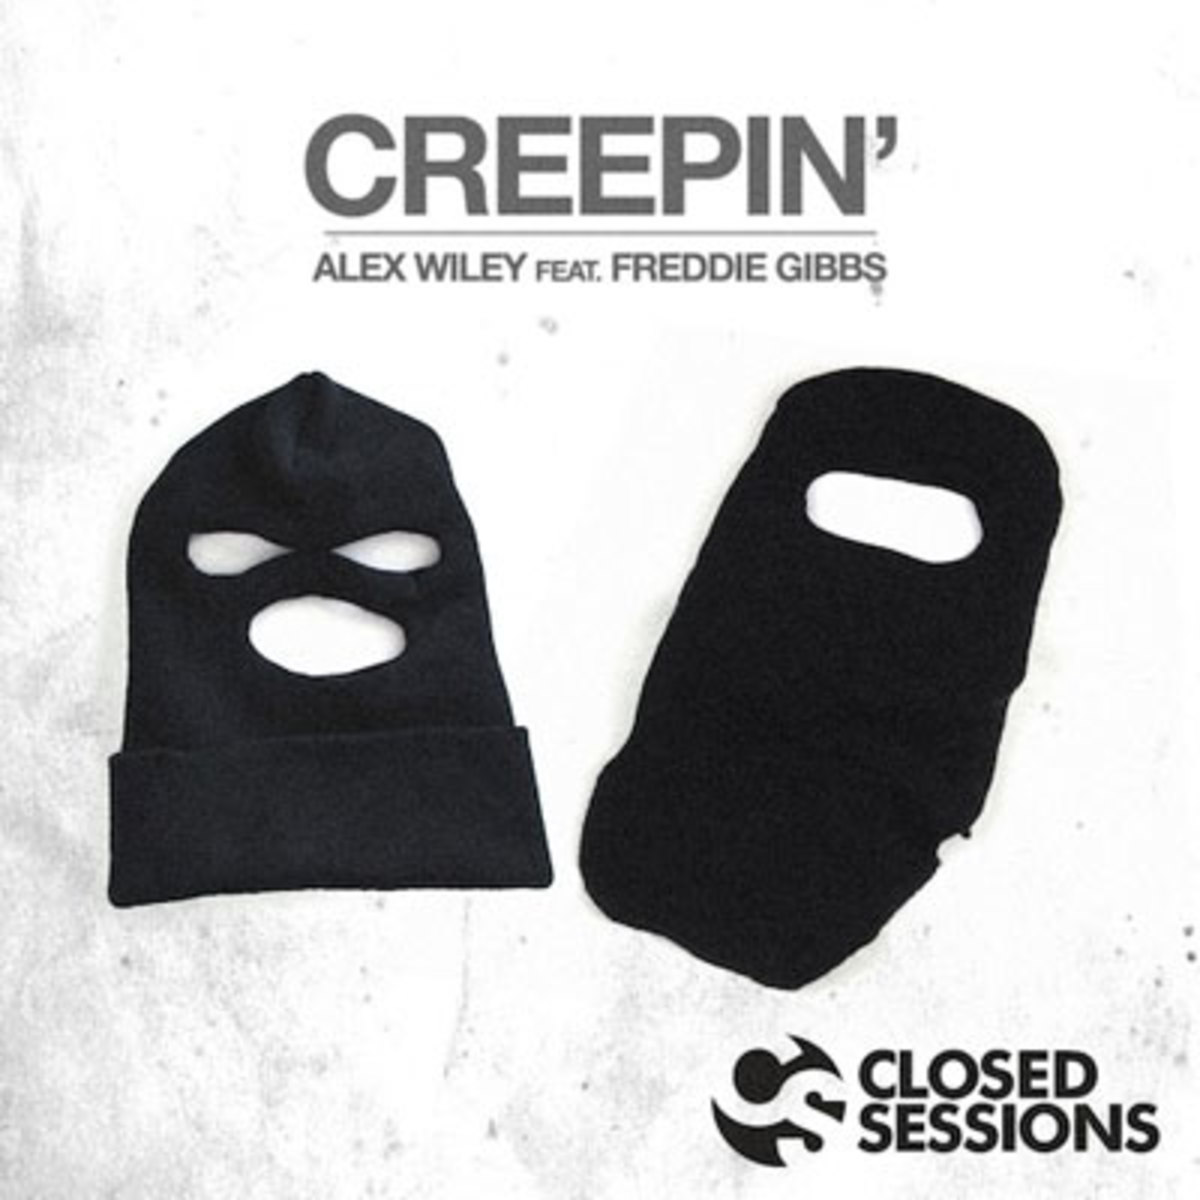 alexwiley-creepin.jpg